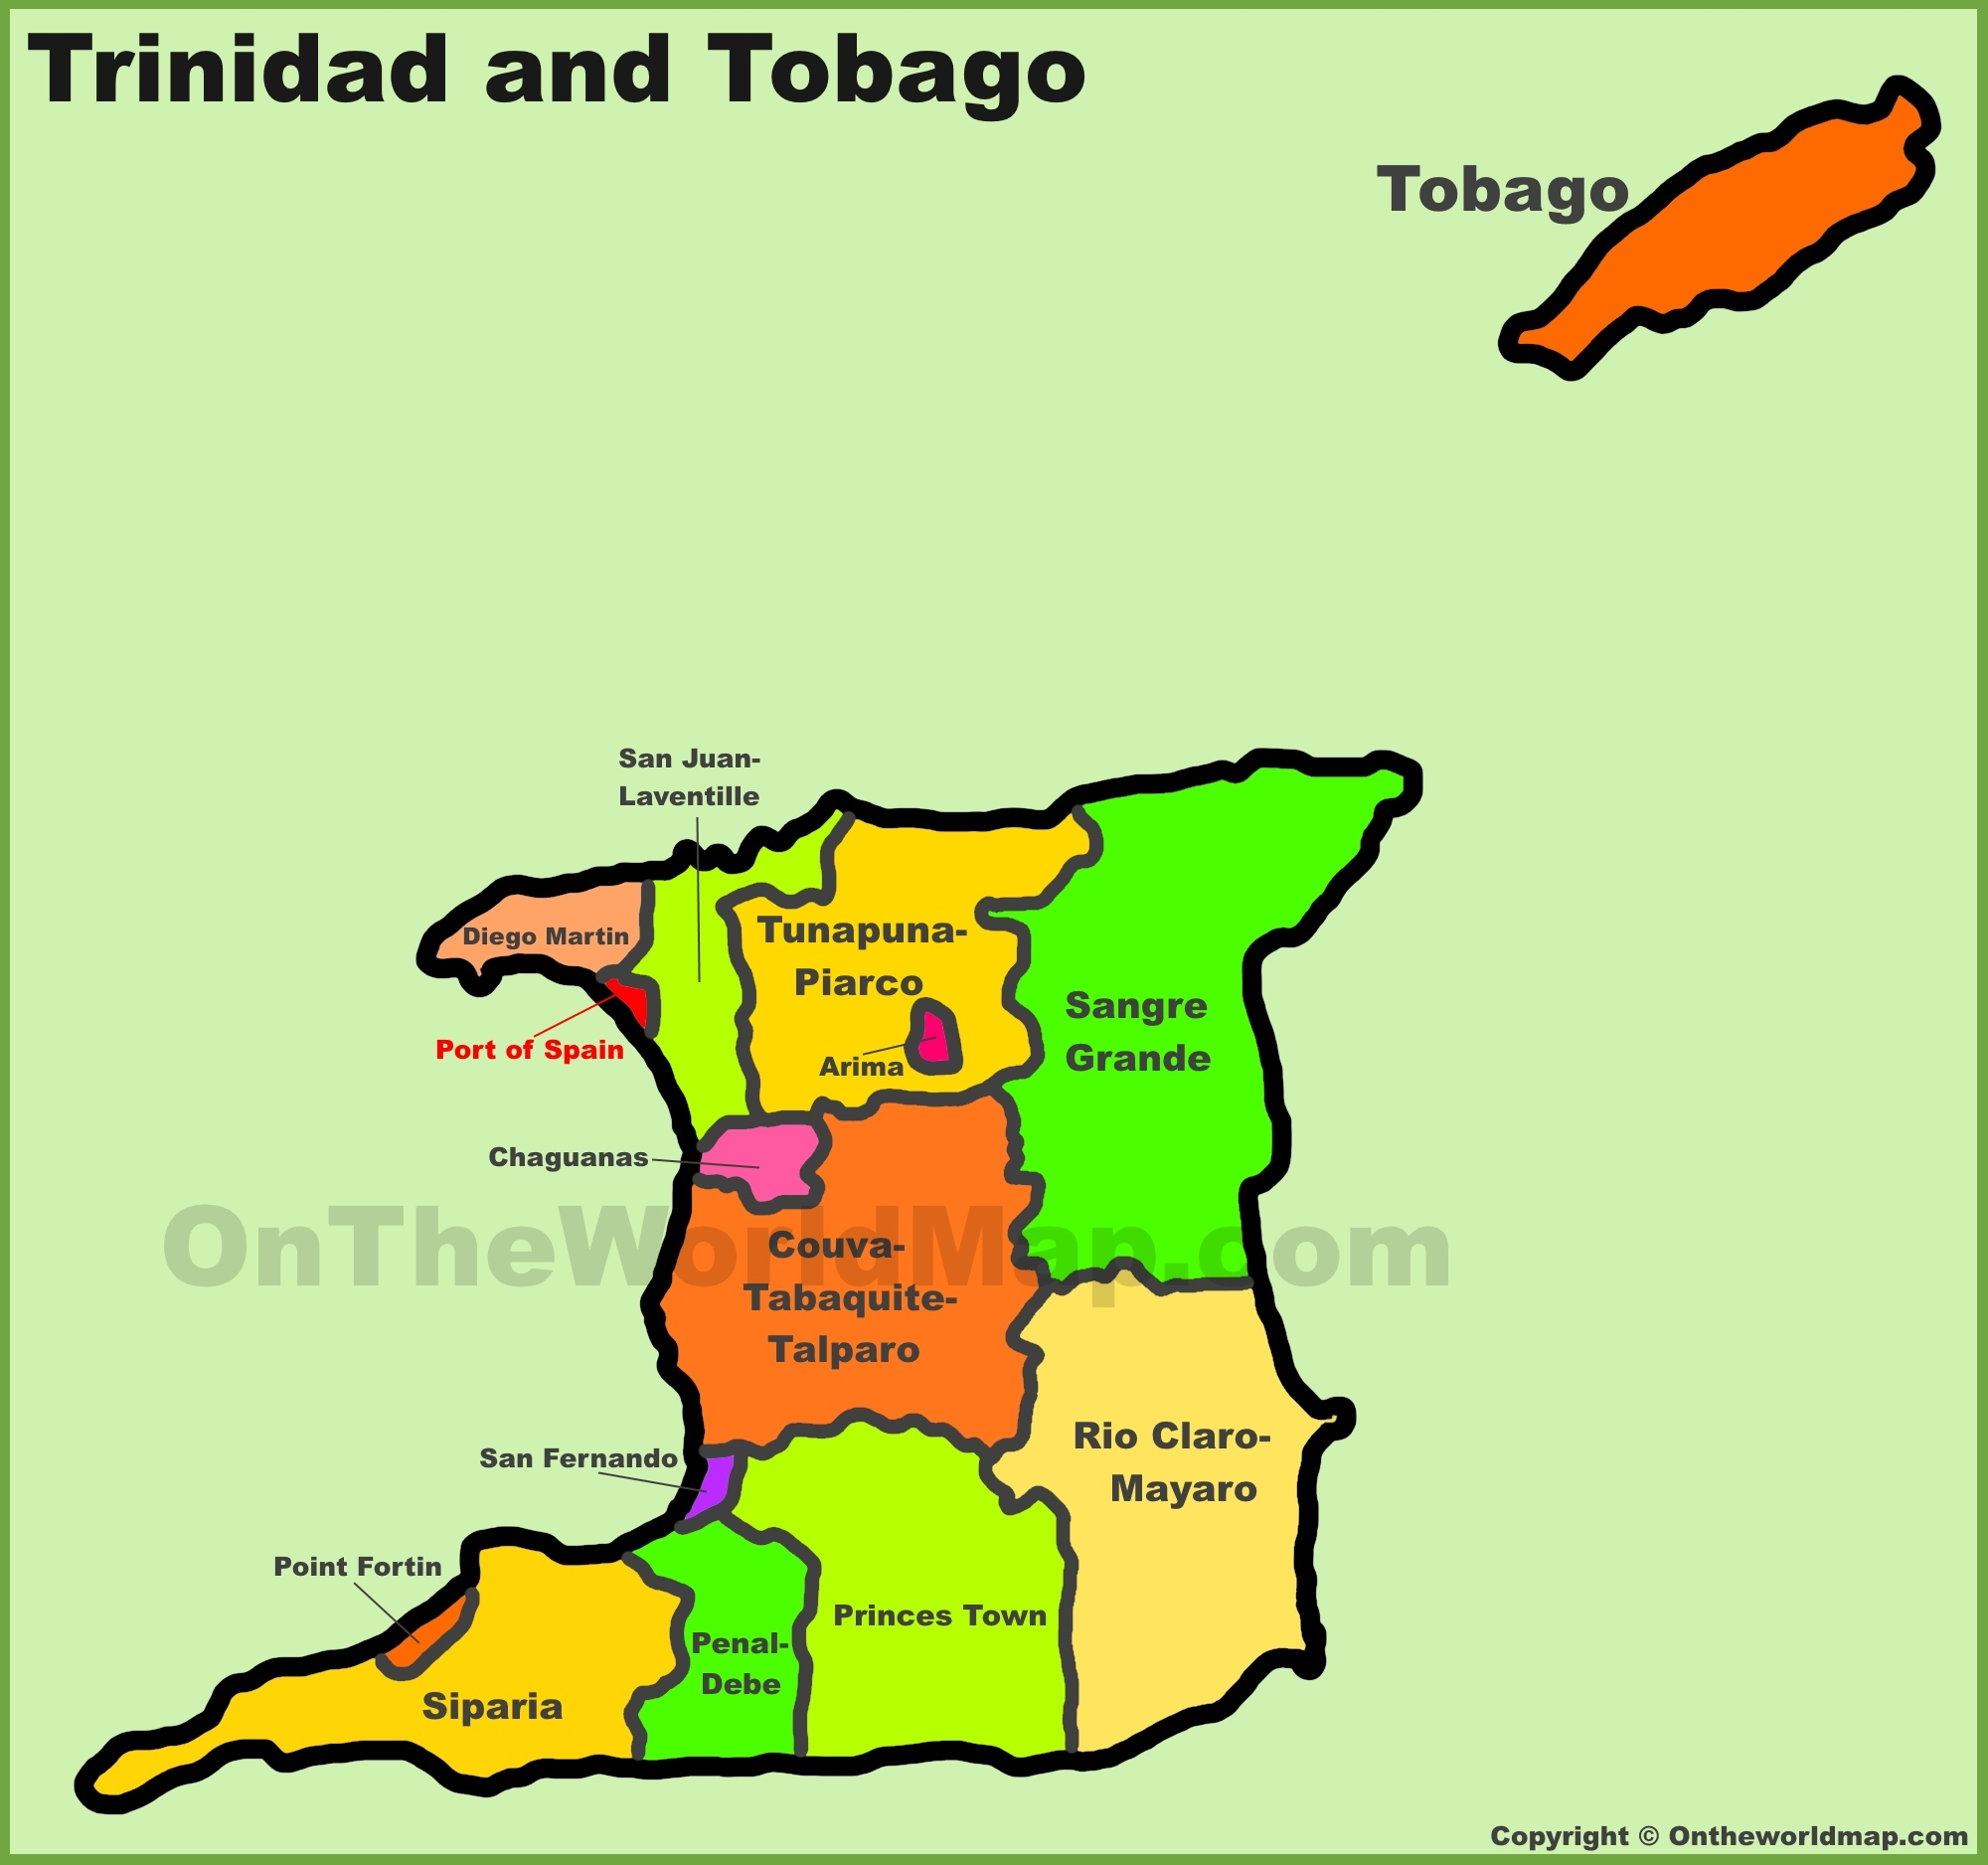 dating site for trinidad and tobago